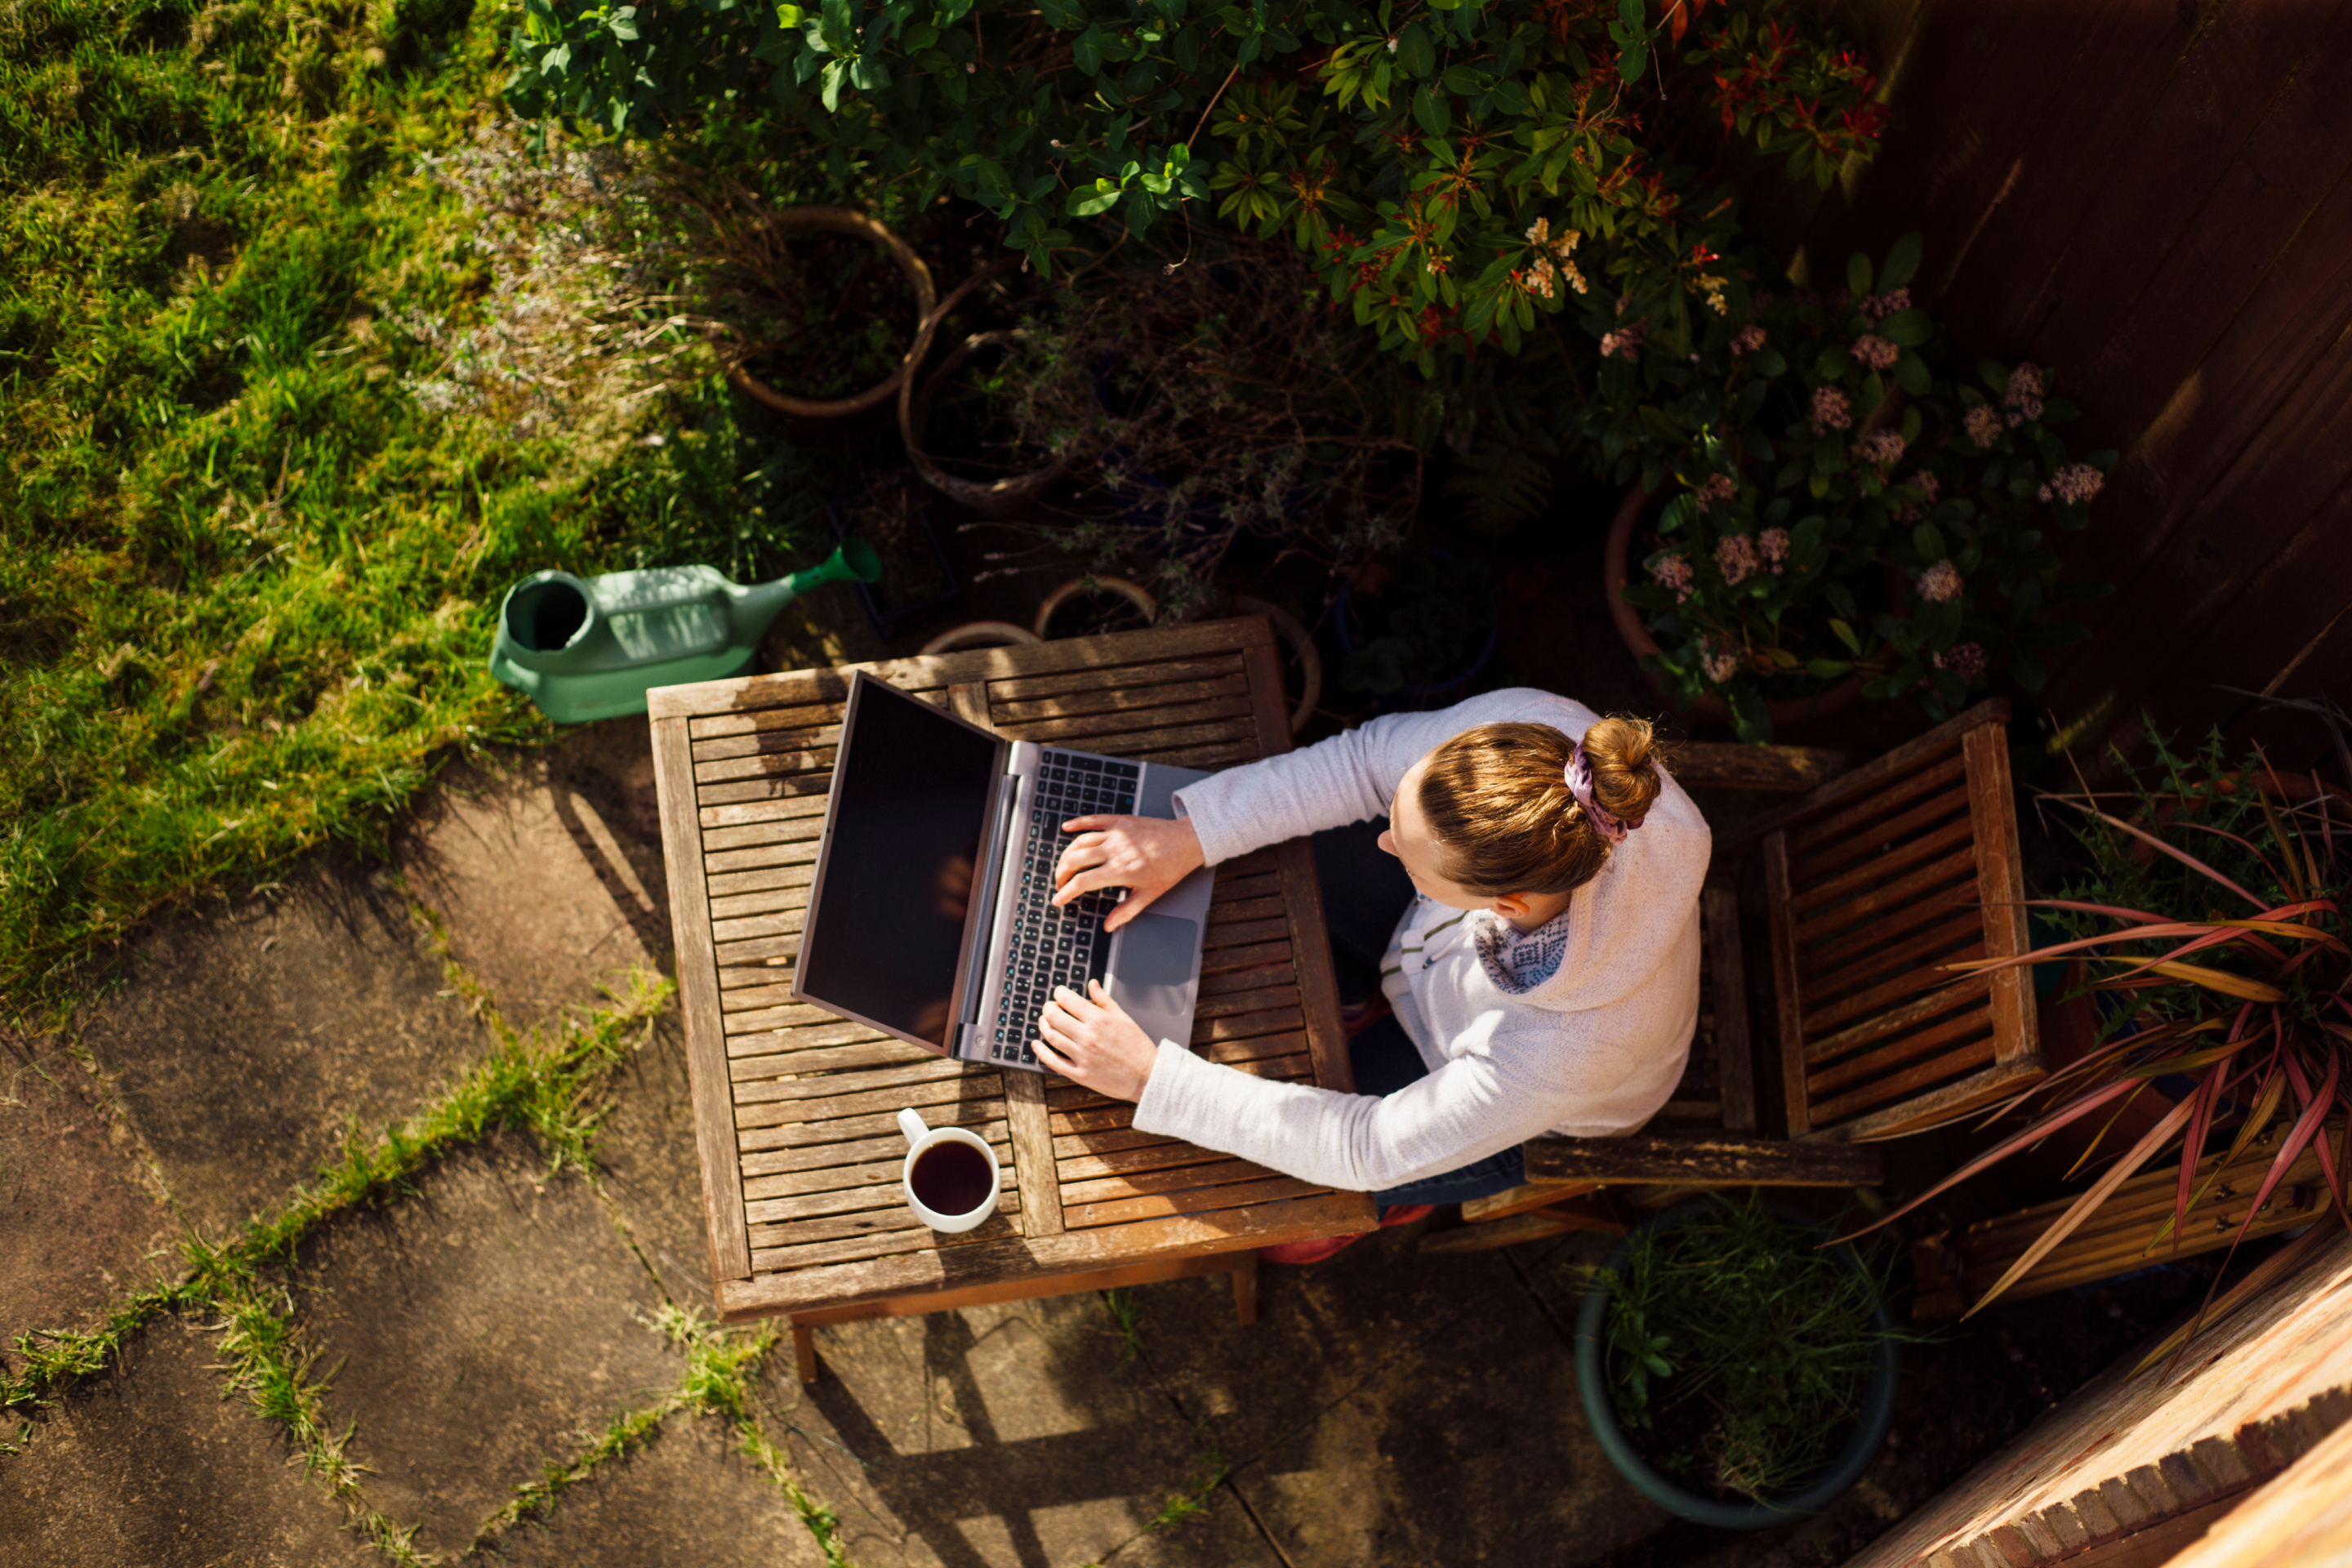 A person remotely working outdoors on a laptop